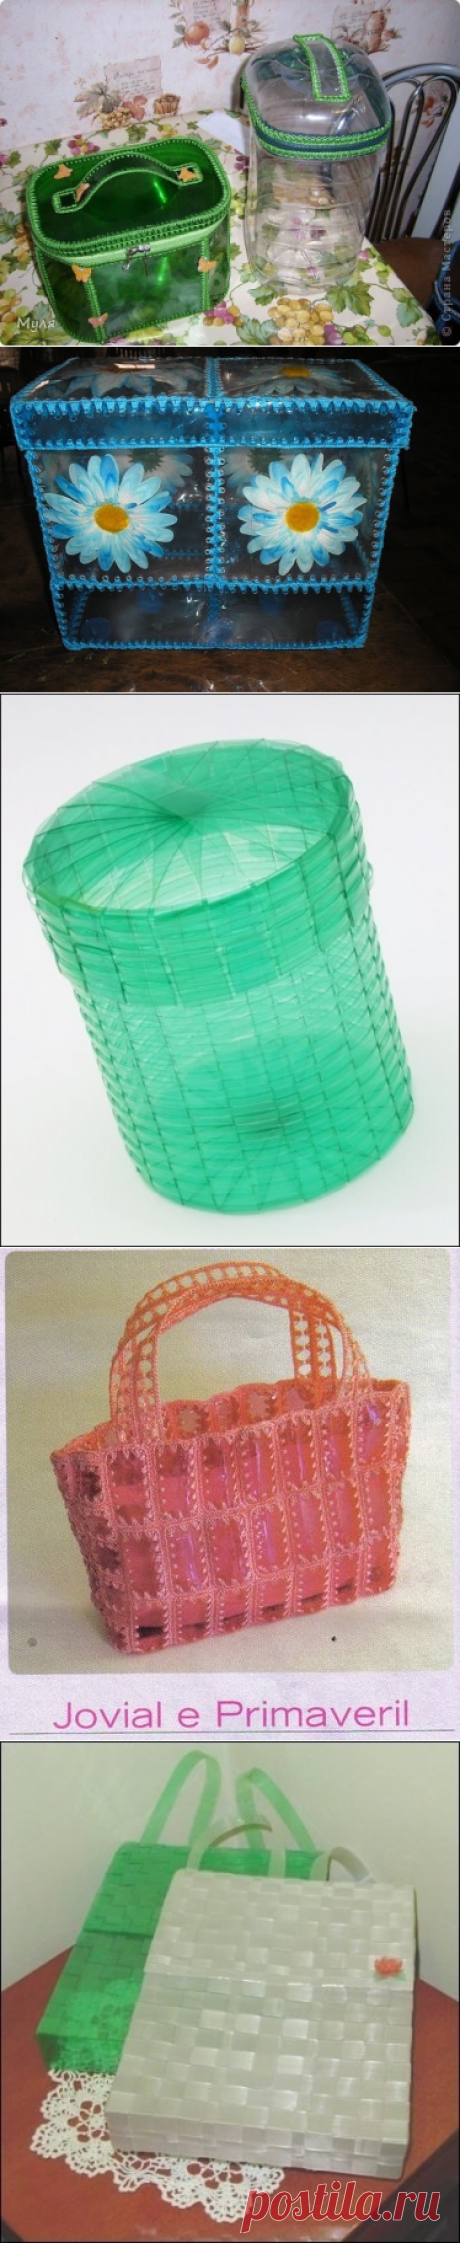 Interesting hand-made articles from plastic bottles